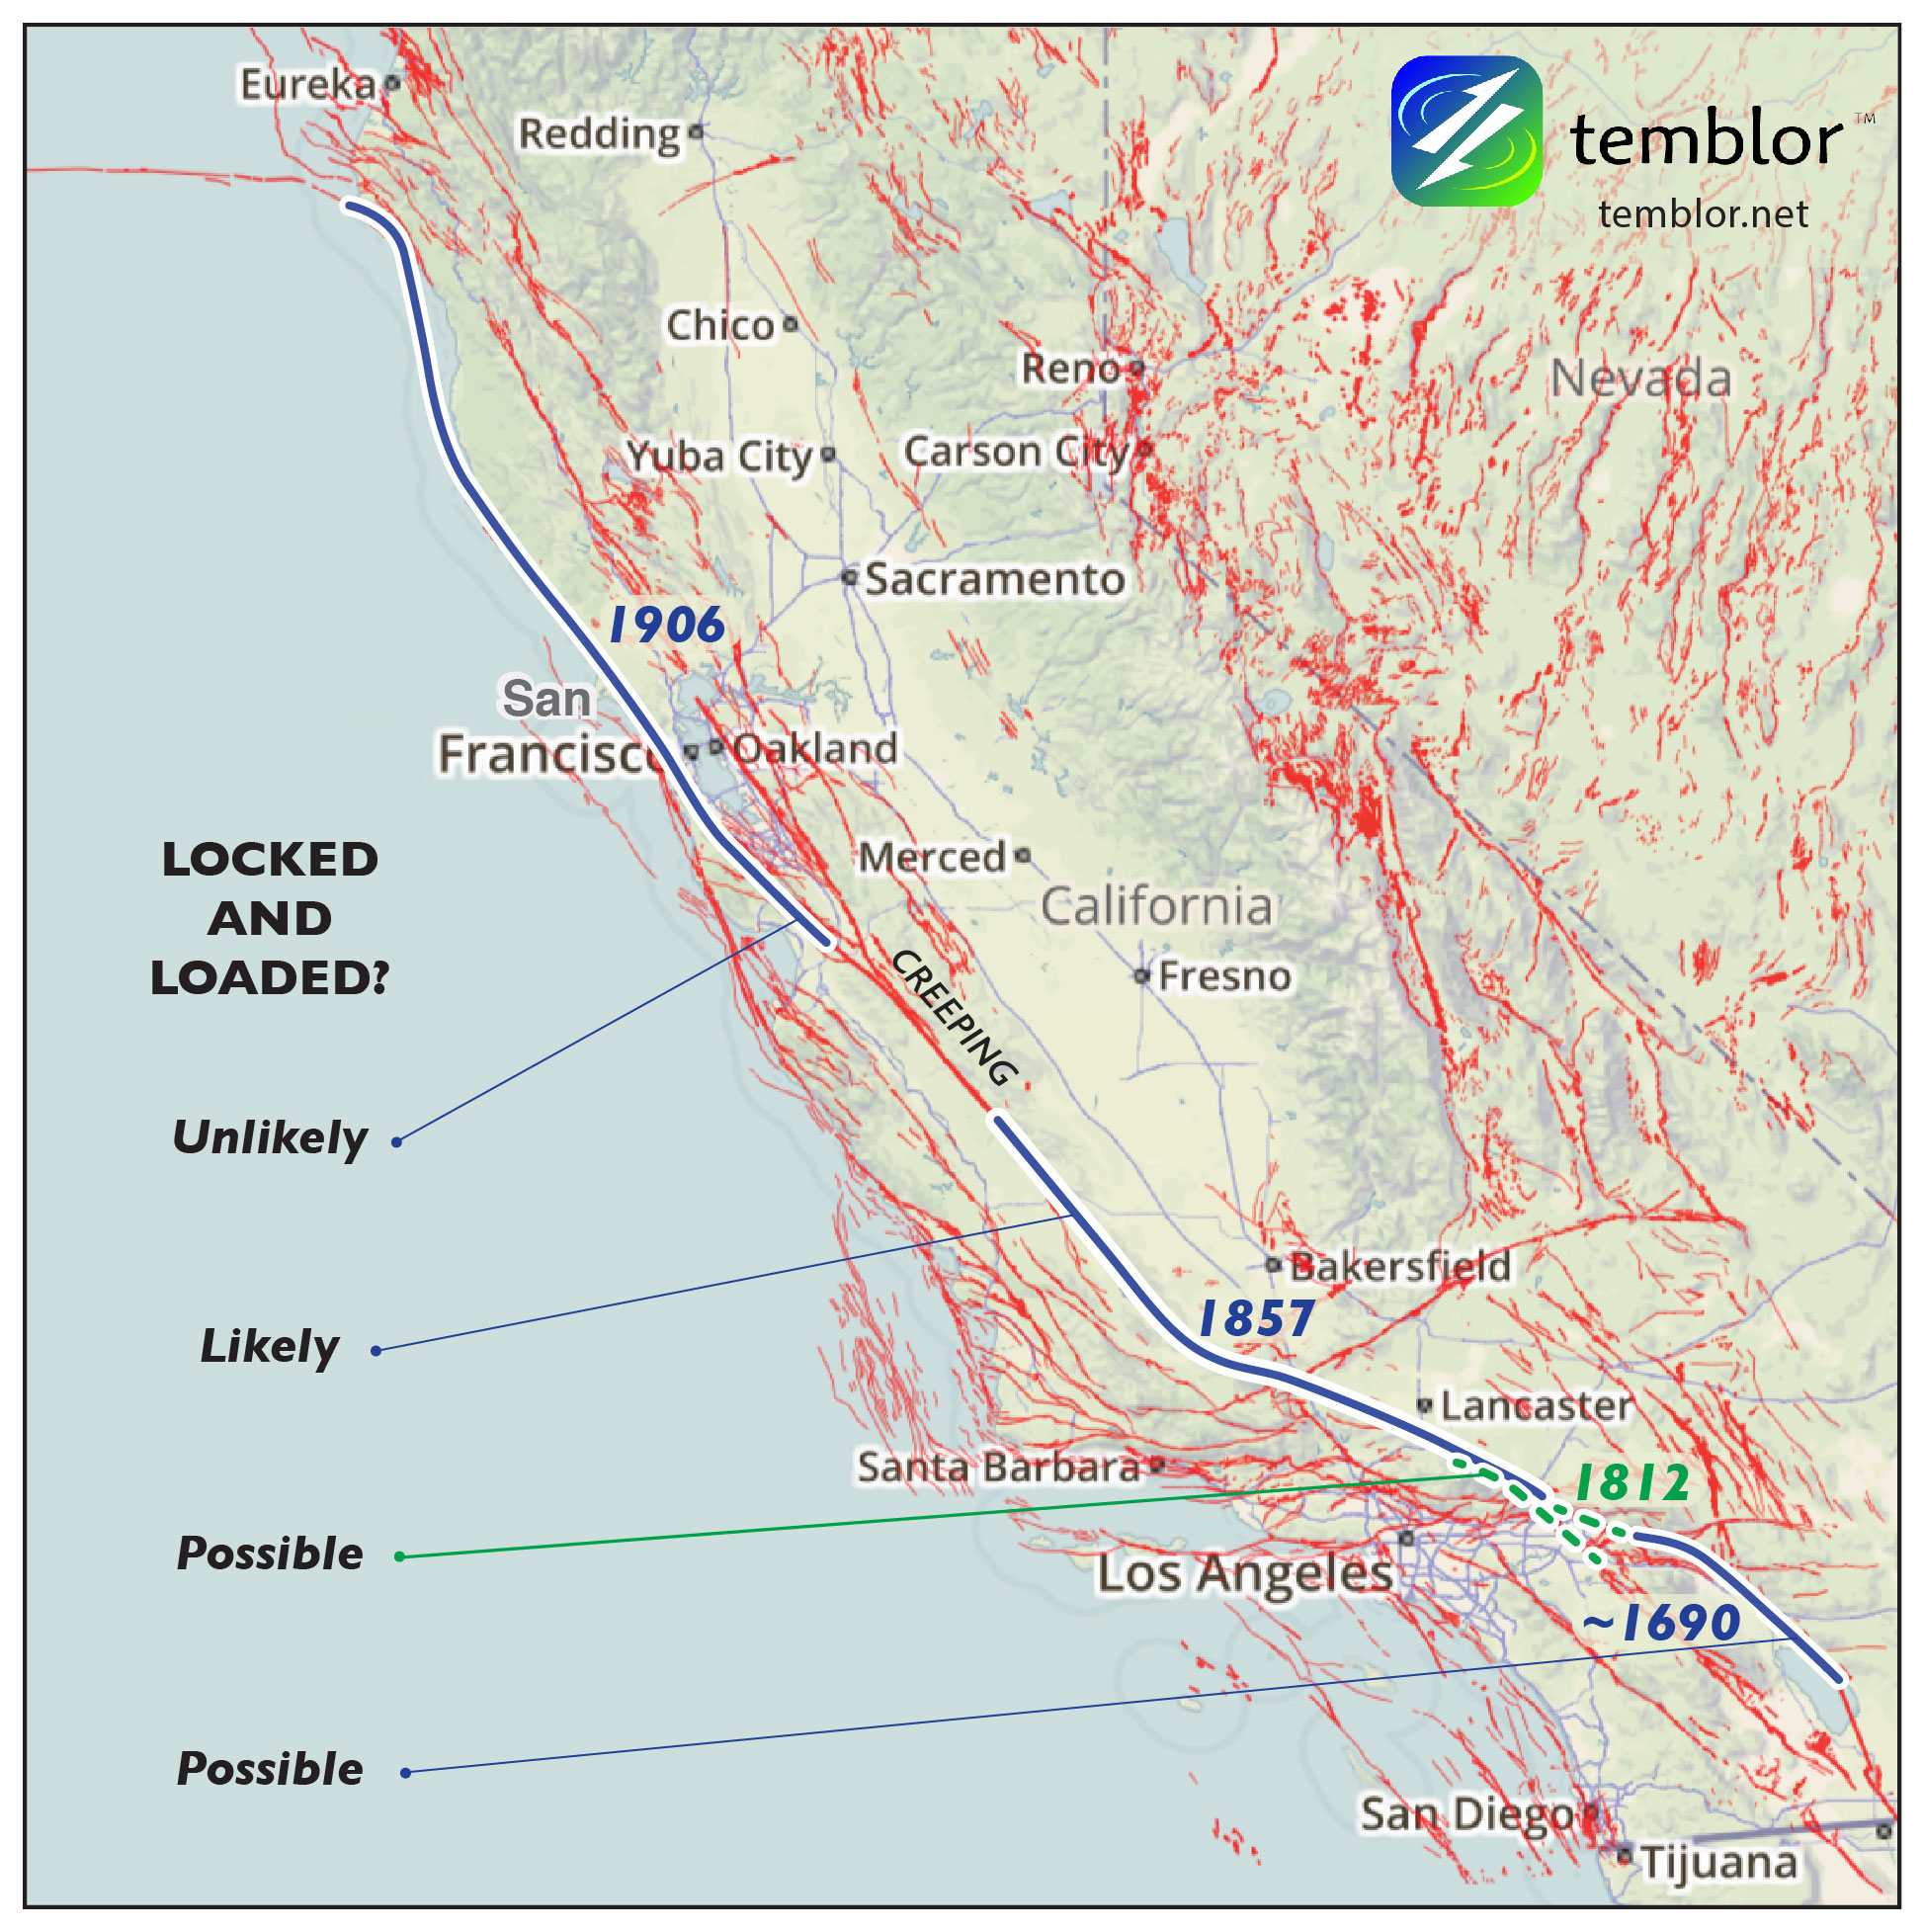 temblor-san-andreas-fault-map